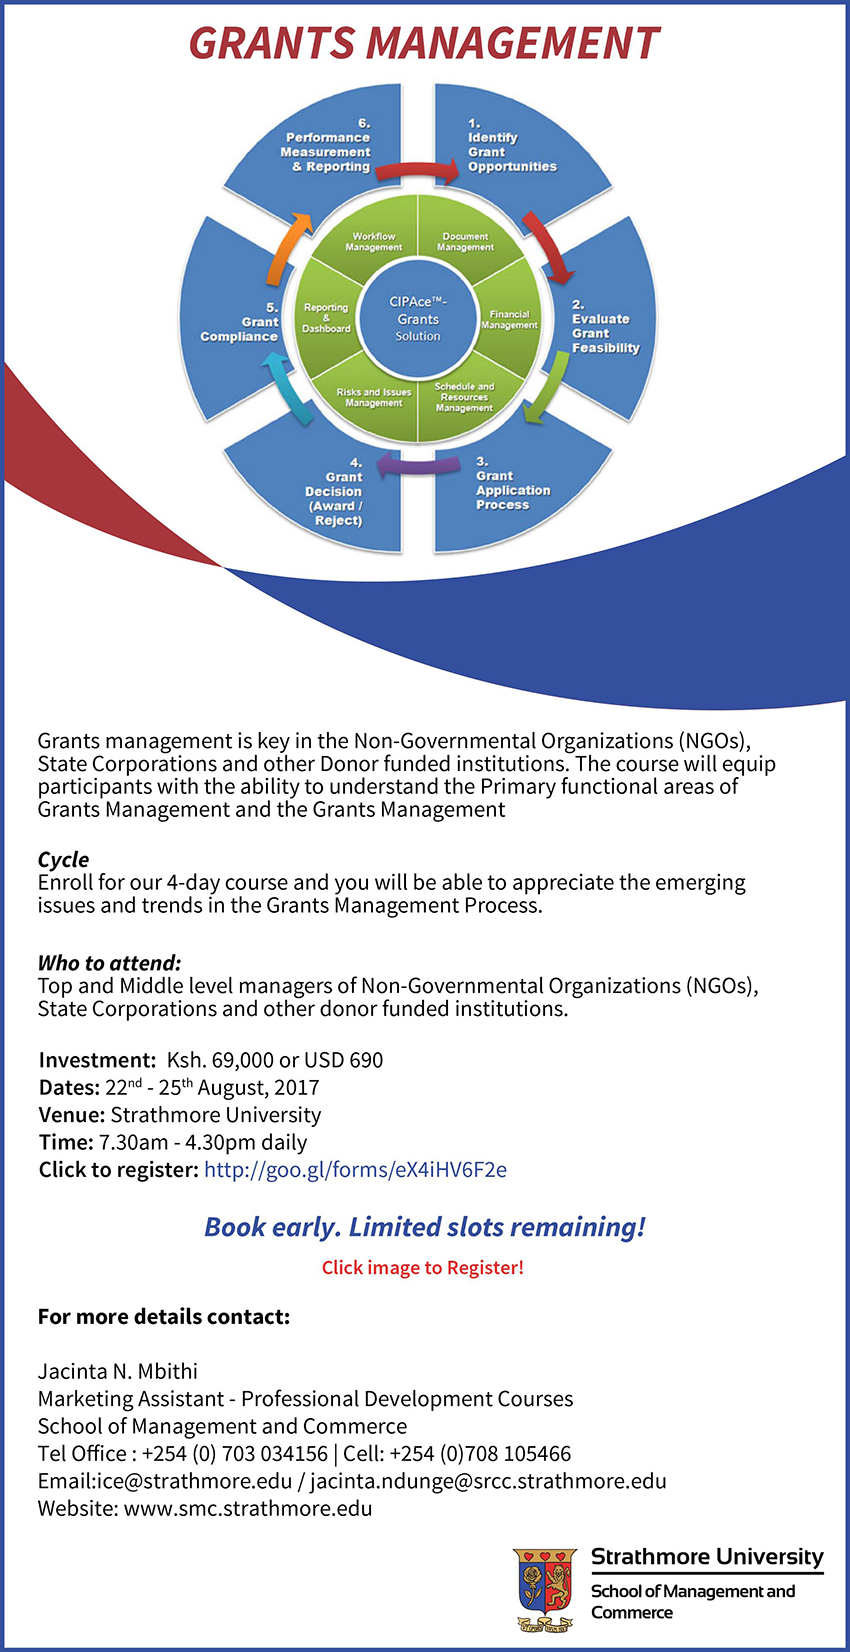 Technology Management Image: Grants Management Course